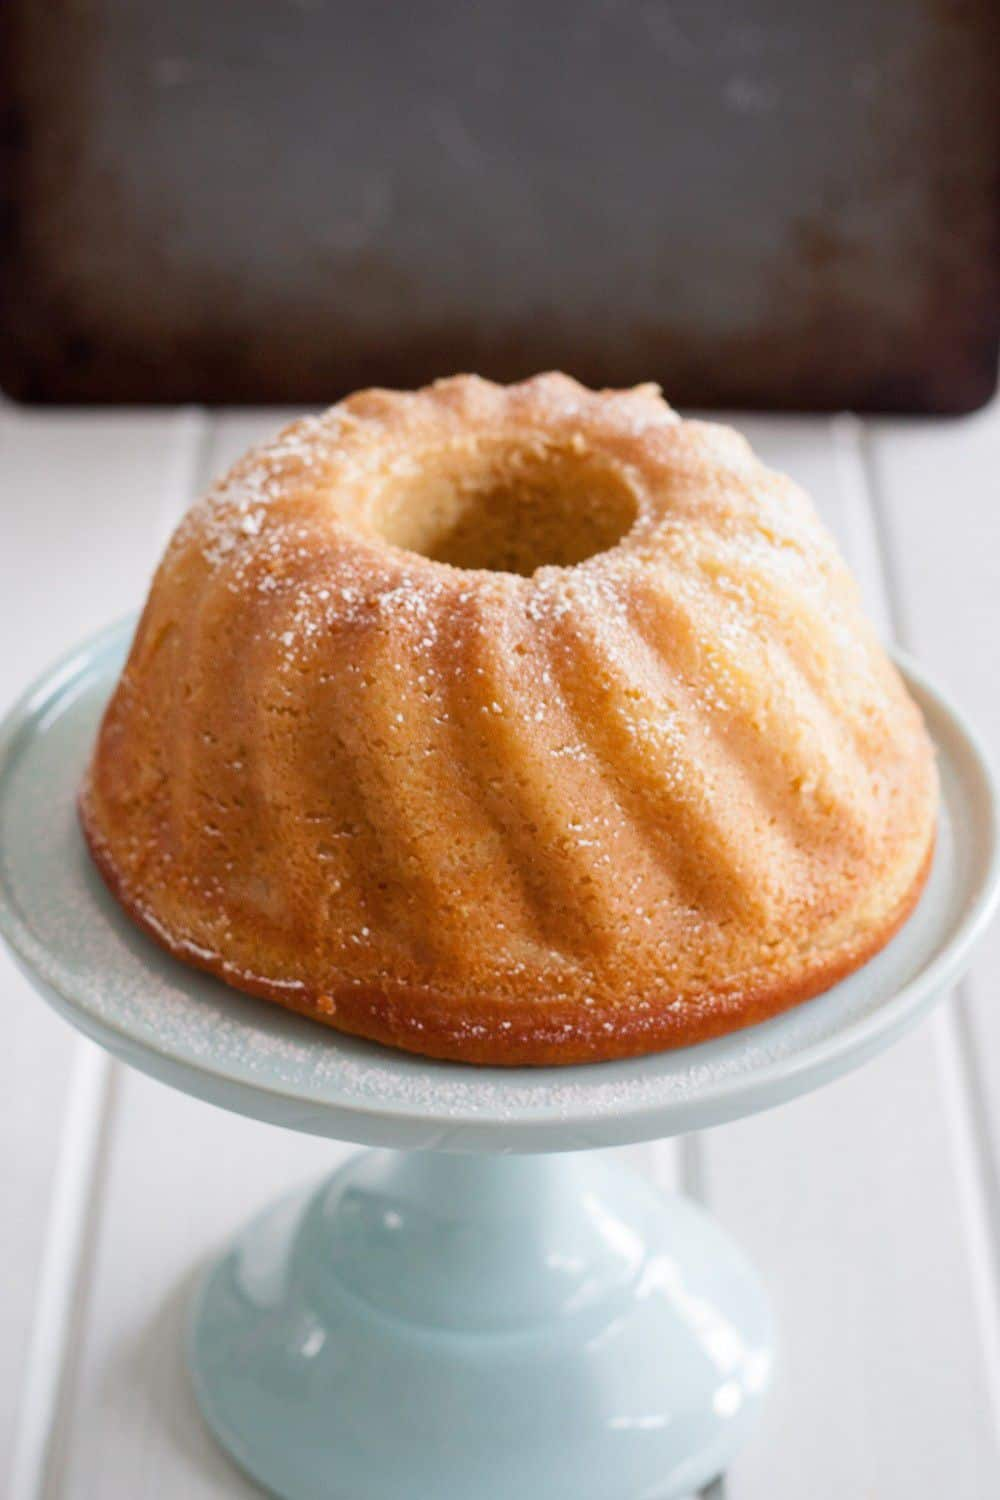 tortuga rum cake better than tortuga rum cake goodie godmother a recipe 8035